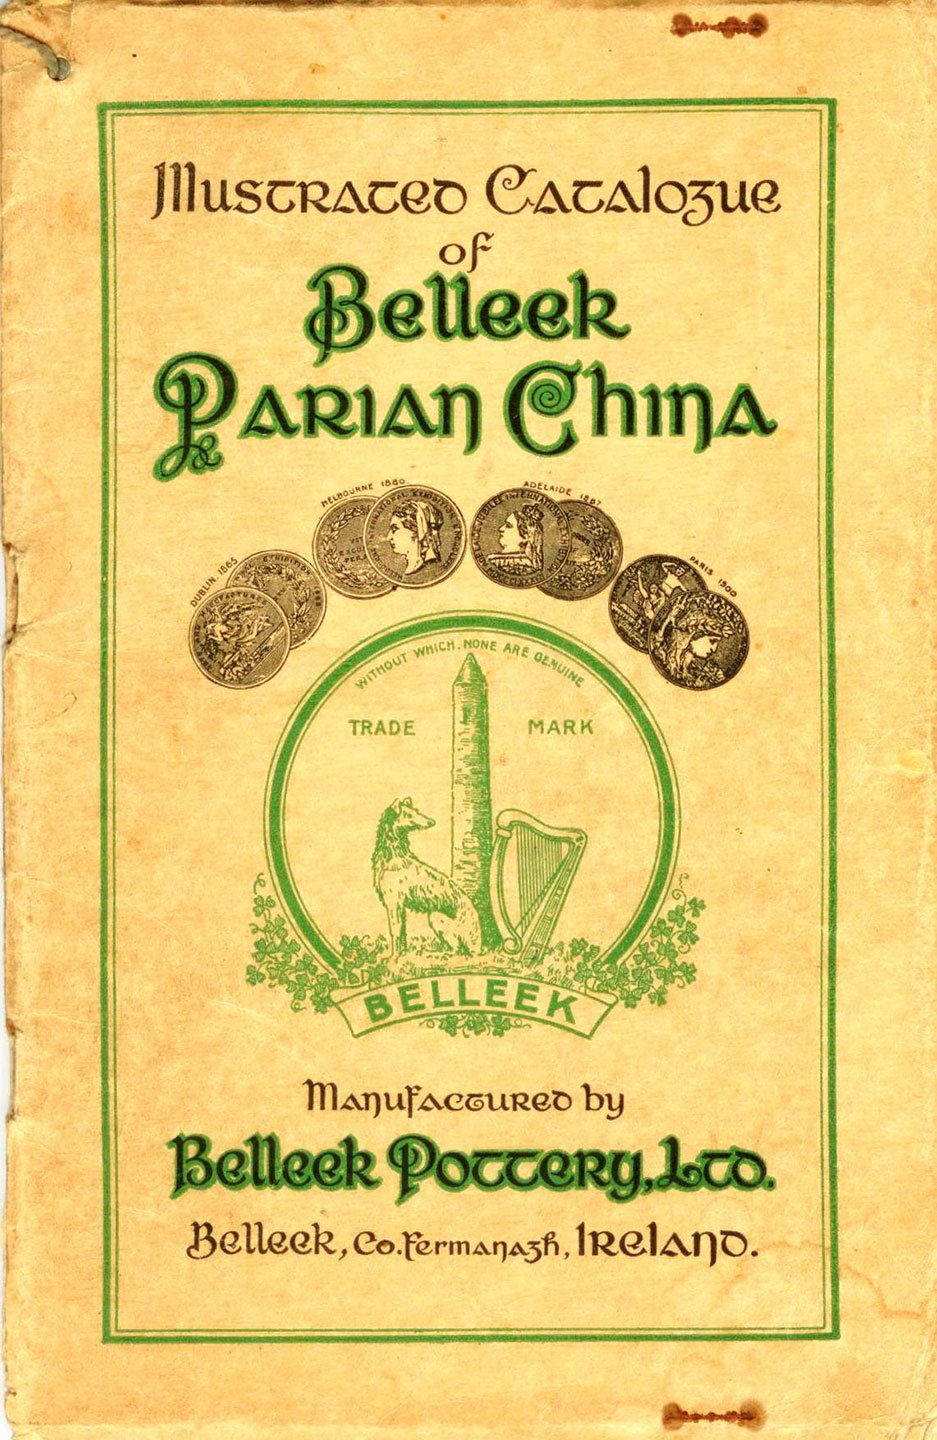 Illustrated Catalogue of Belleek Parian China